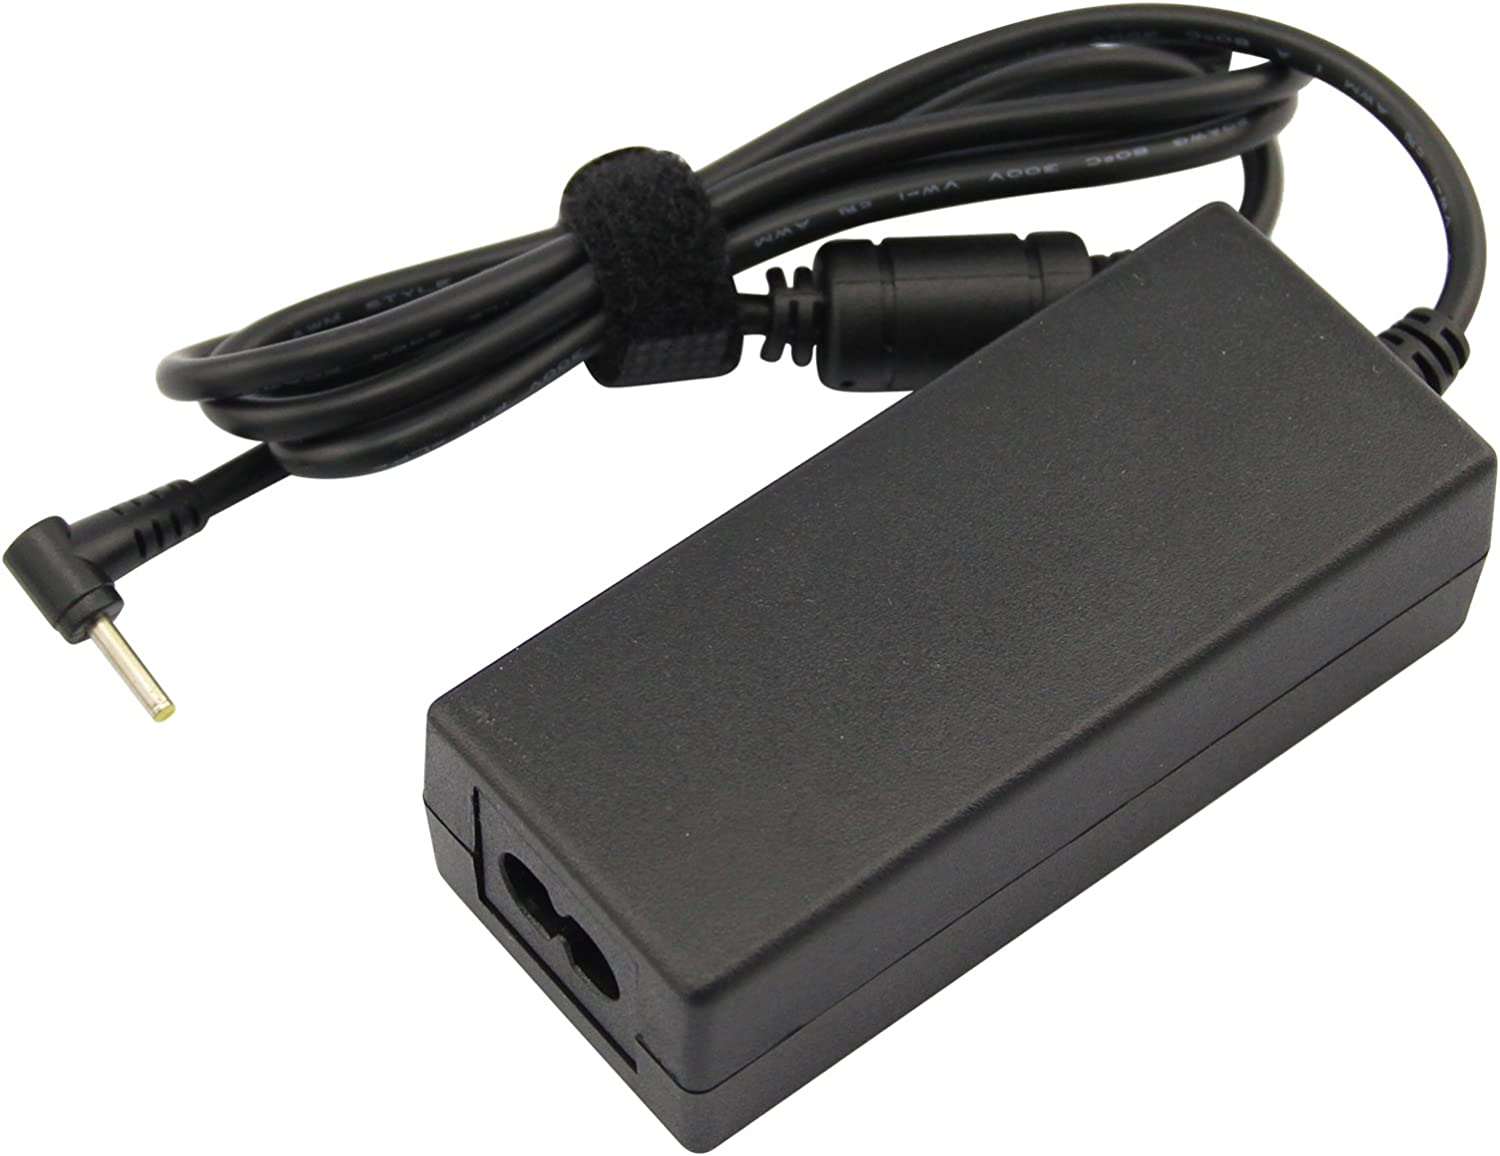 Futurebatt 40W AC Adapter Charger for ASUS Eee PC 1001HA 1001P 1001PXD 1002HA 1005P 1005pe 1005 1005ha 1005hab 1008P 1008PB 1011PX 1015P 1016P 1016PT 1018P 1104HA 1106HA 1201HA 1215N Power Supply Cord